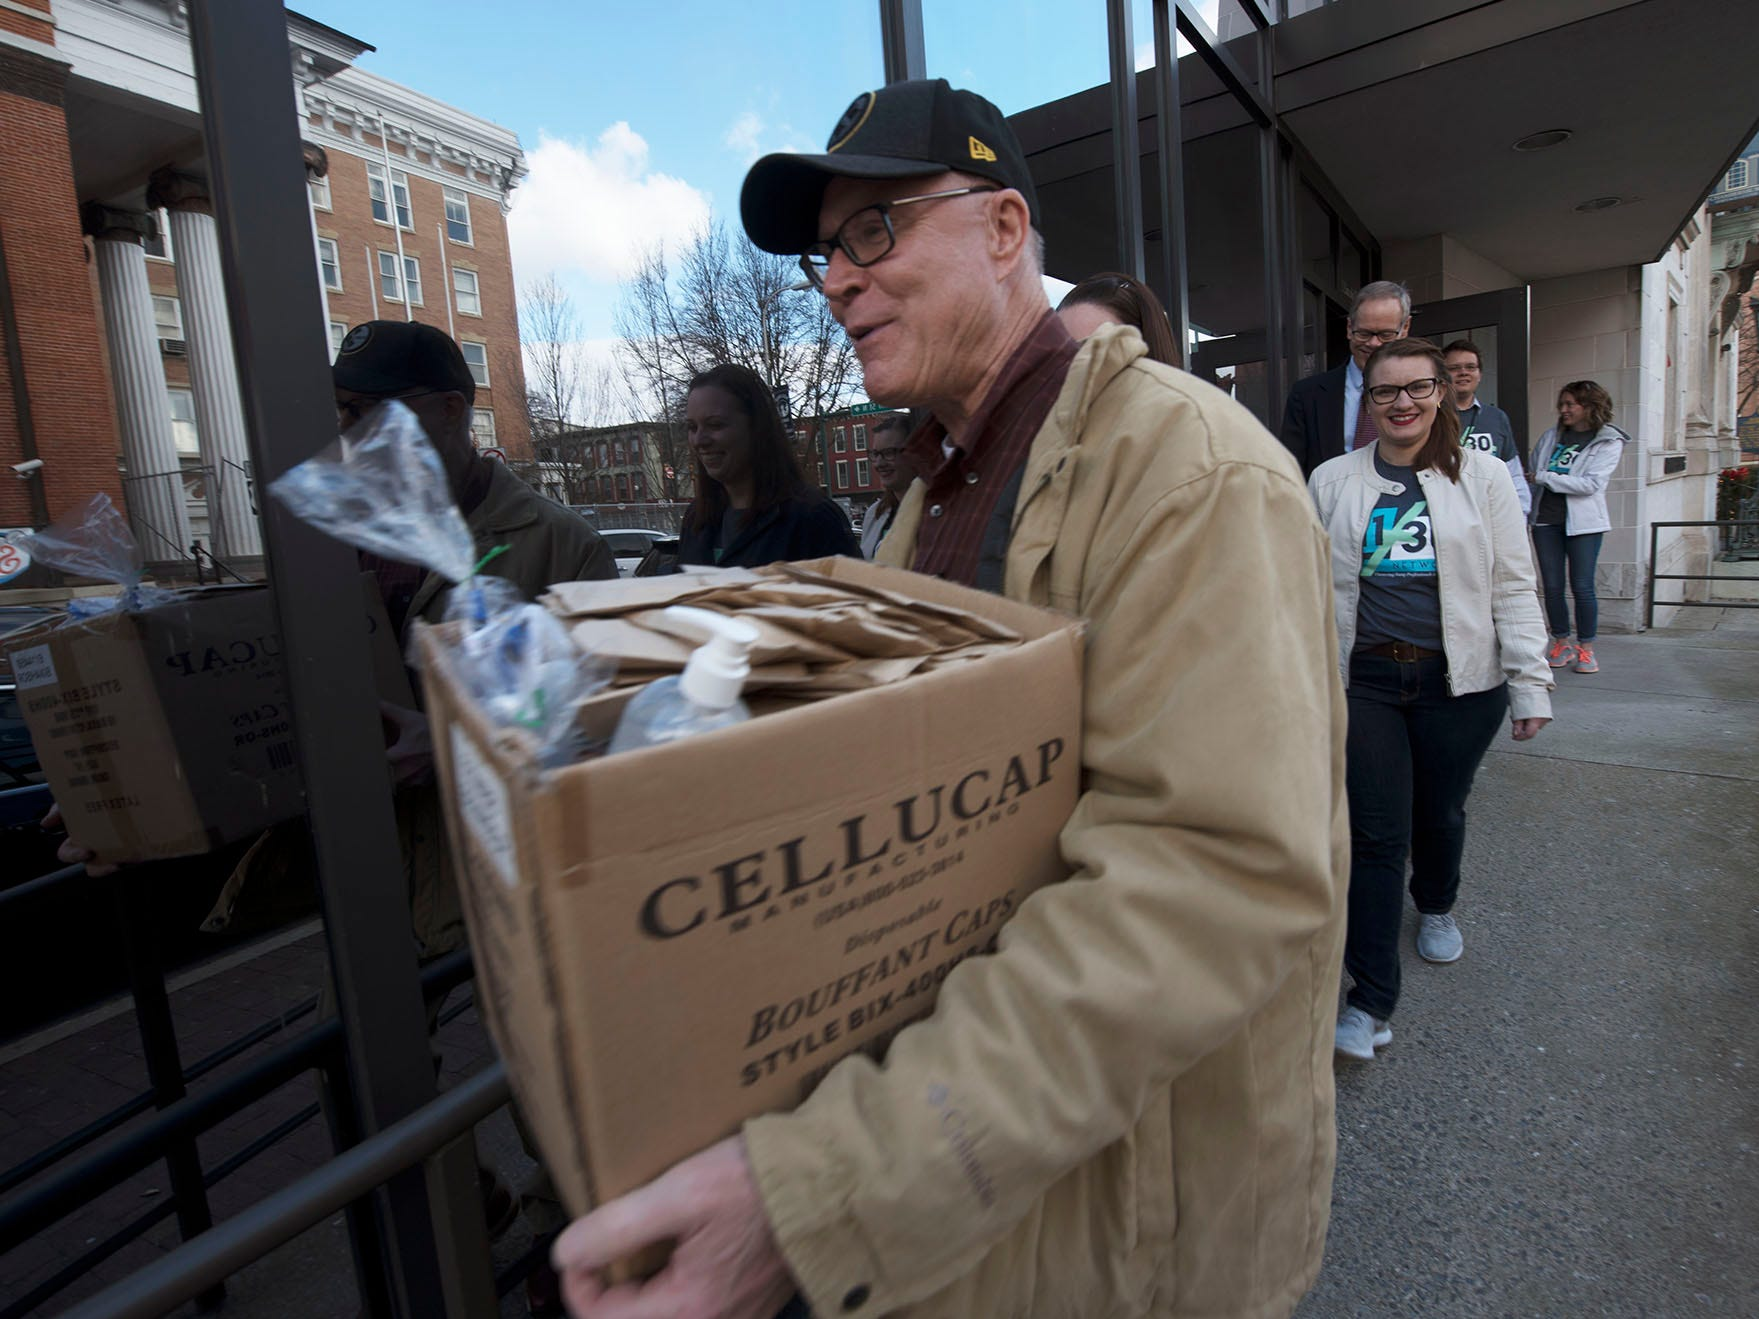 Franklin County Commissioner Bob Thomas carries a care box. The 11/30 Network is hosting its annual First Responders Appreciation Day on Friday, December 7, 2018. The steering committee visited the Franklin County Sheriff's office and over 35 other first responder stations to deliver care packages.